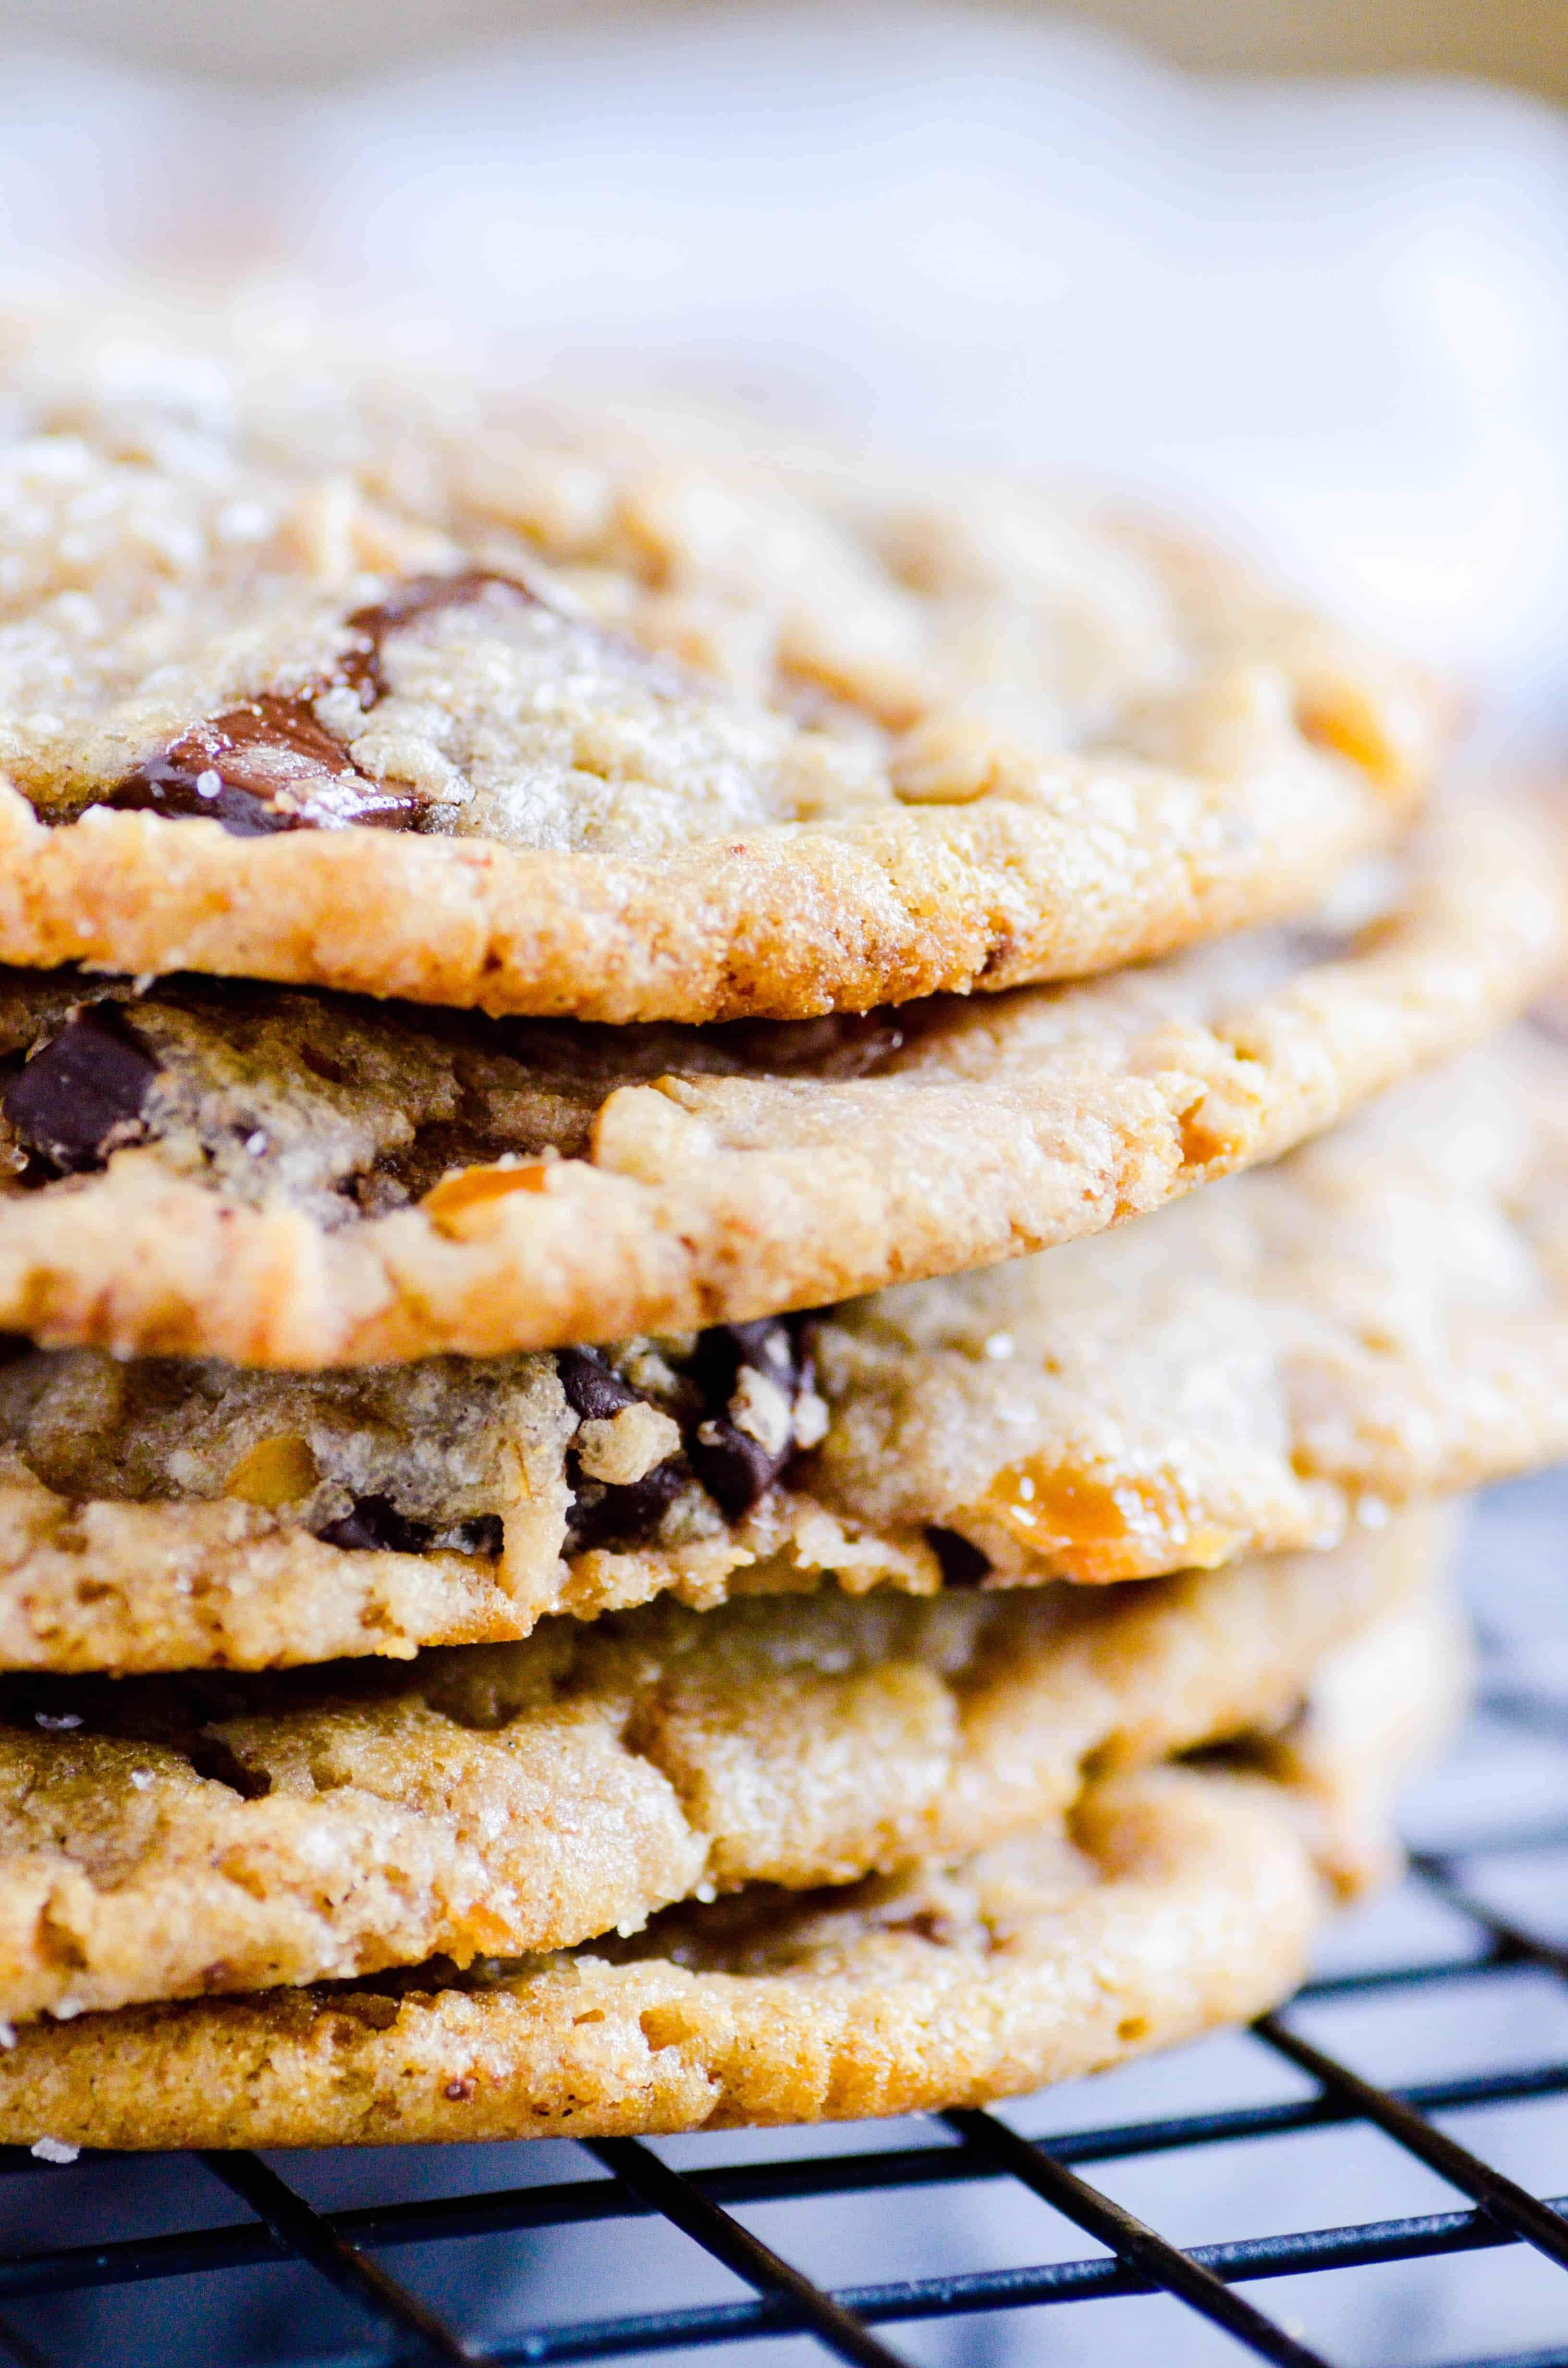 A perfect cookie filled with caramel, chocolate chunks, pretzels, and a sprinkle of flaky sea salt on top-- everything but the kitchen sink!